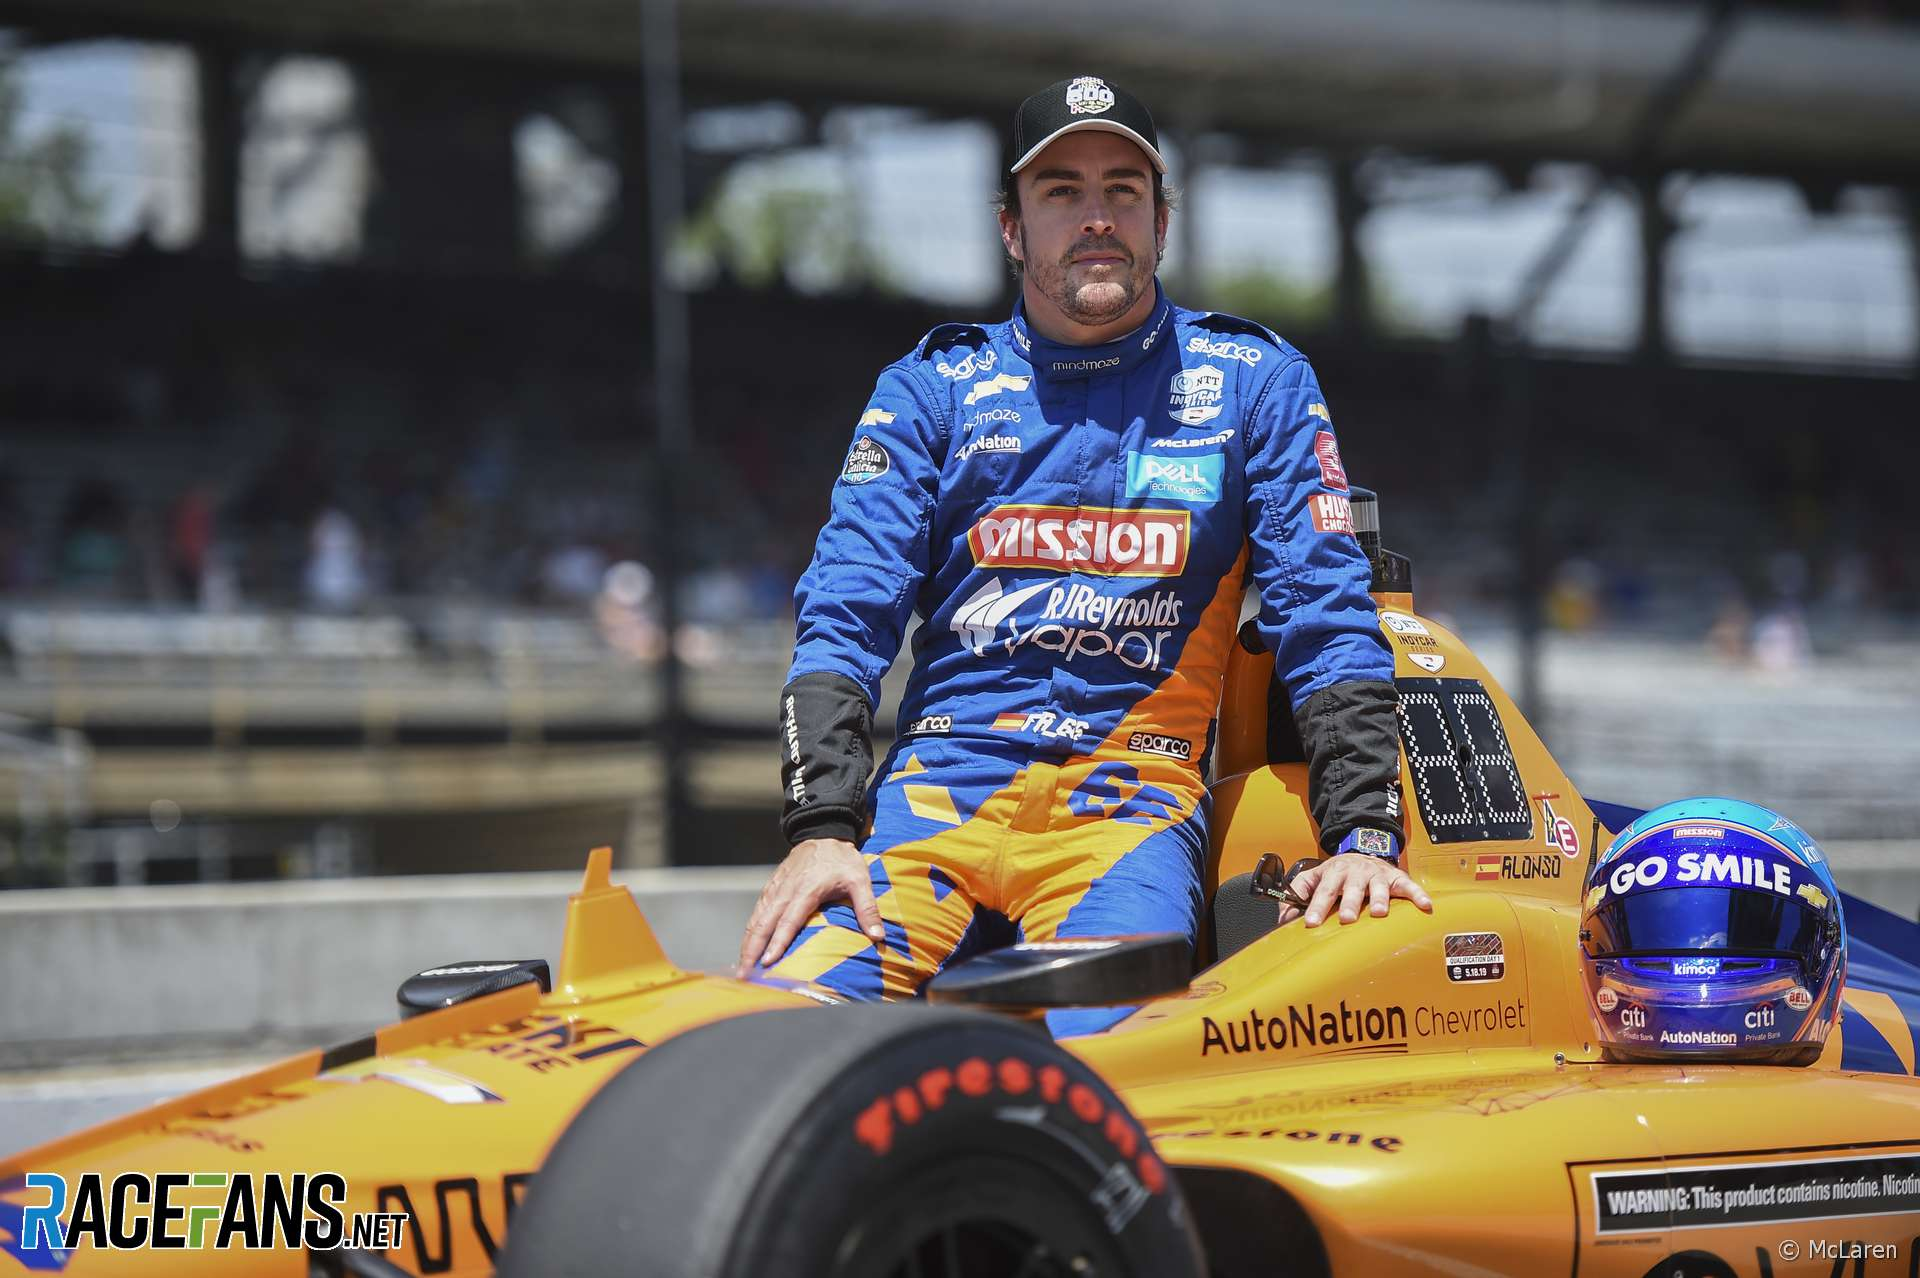 Alonso reunites with McLaren for Indianapolis 500 return · RaceFans